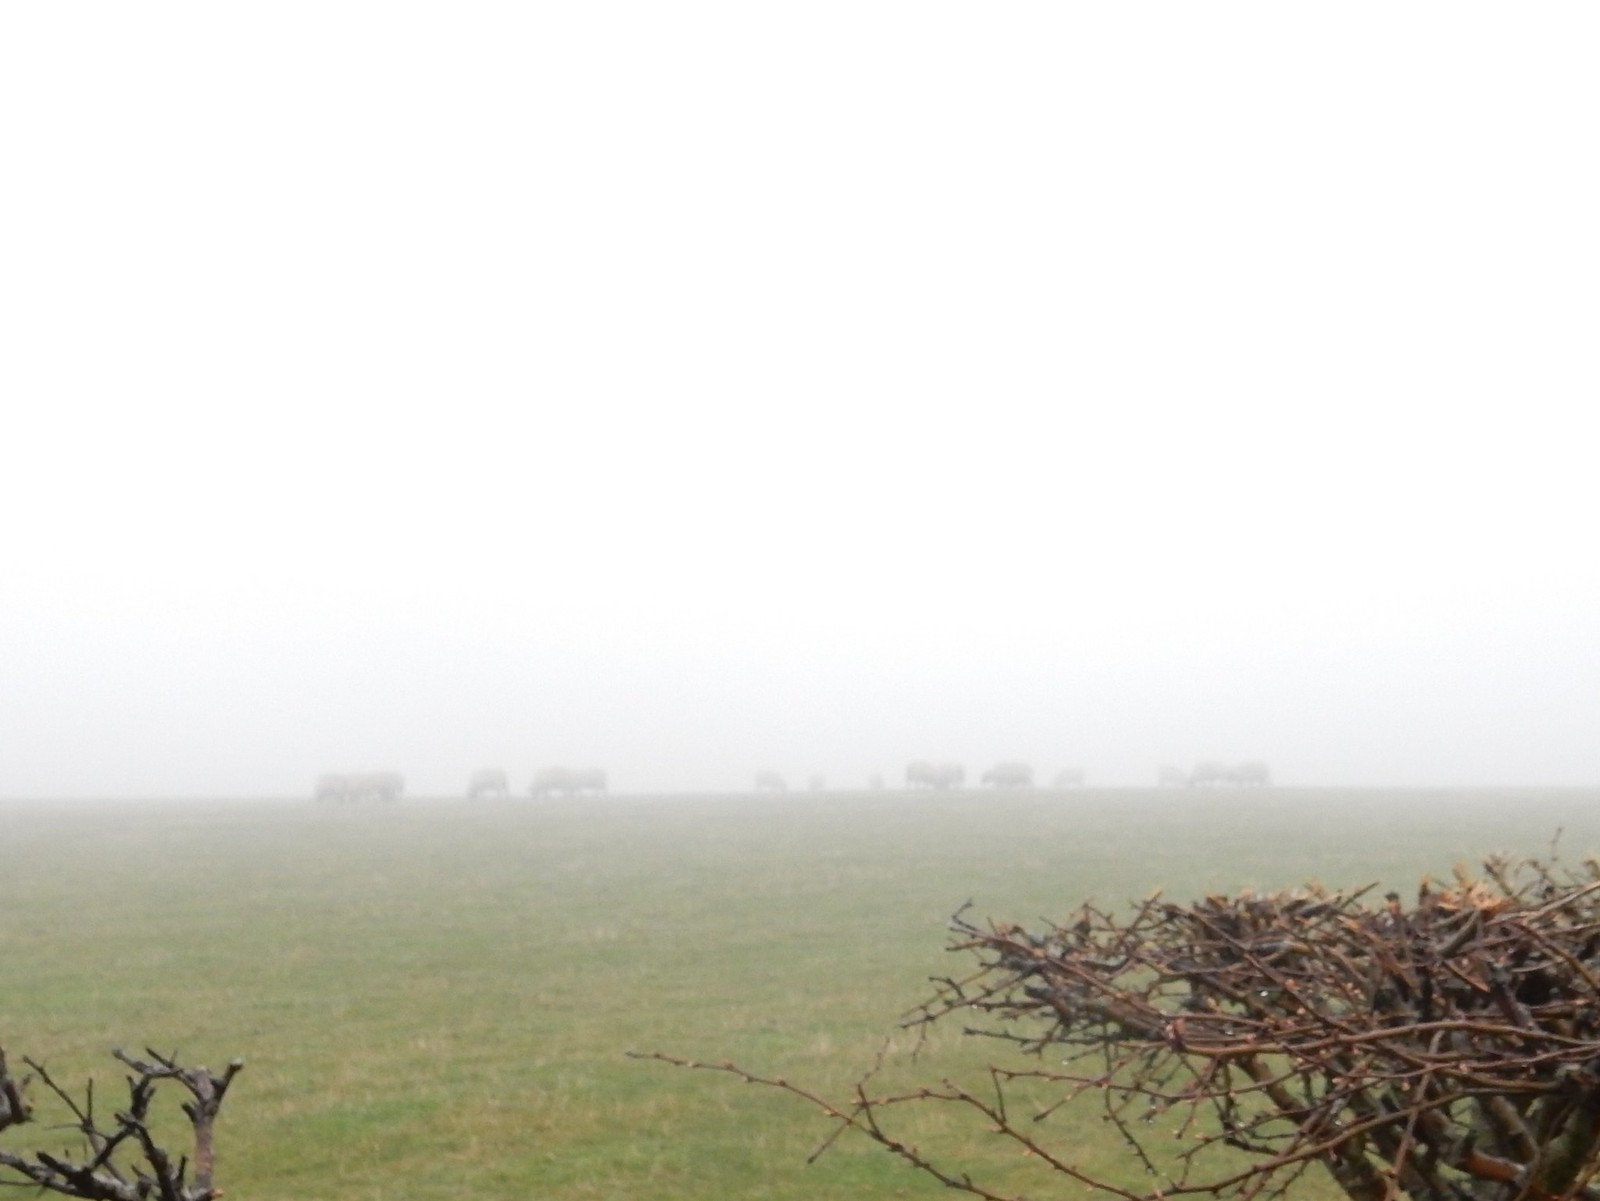 Sheep on the top (note visibility) Hassocks to Lewes